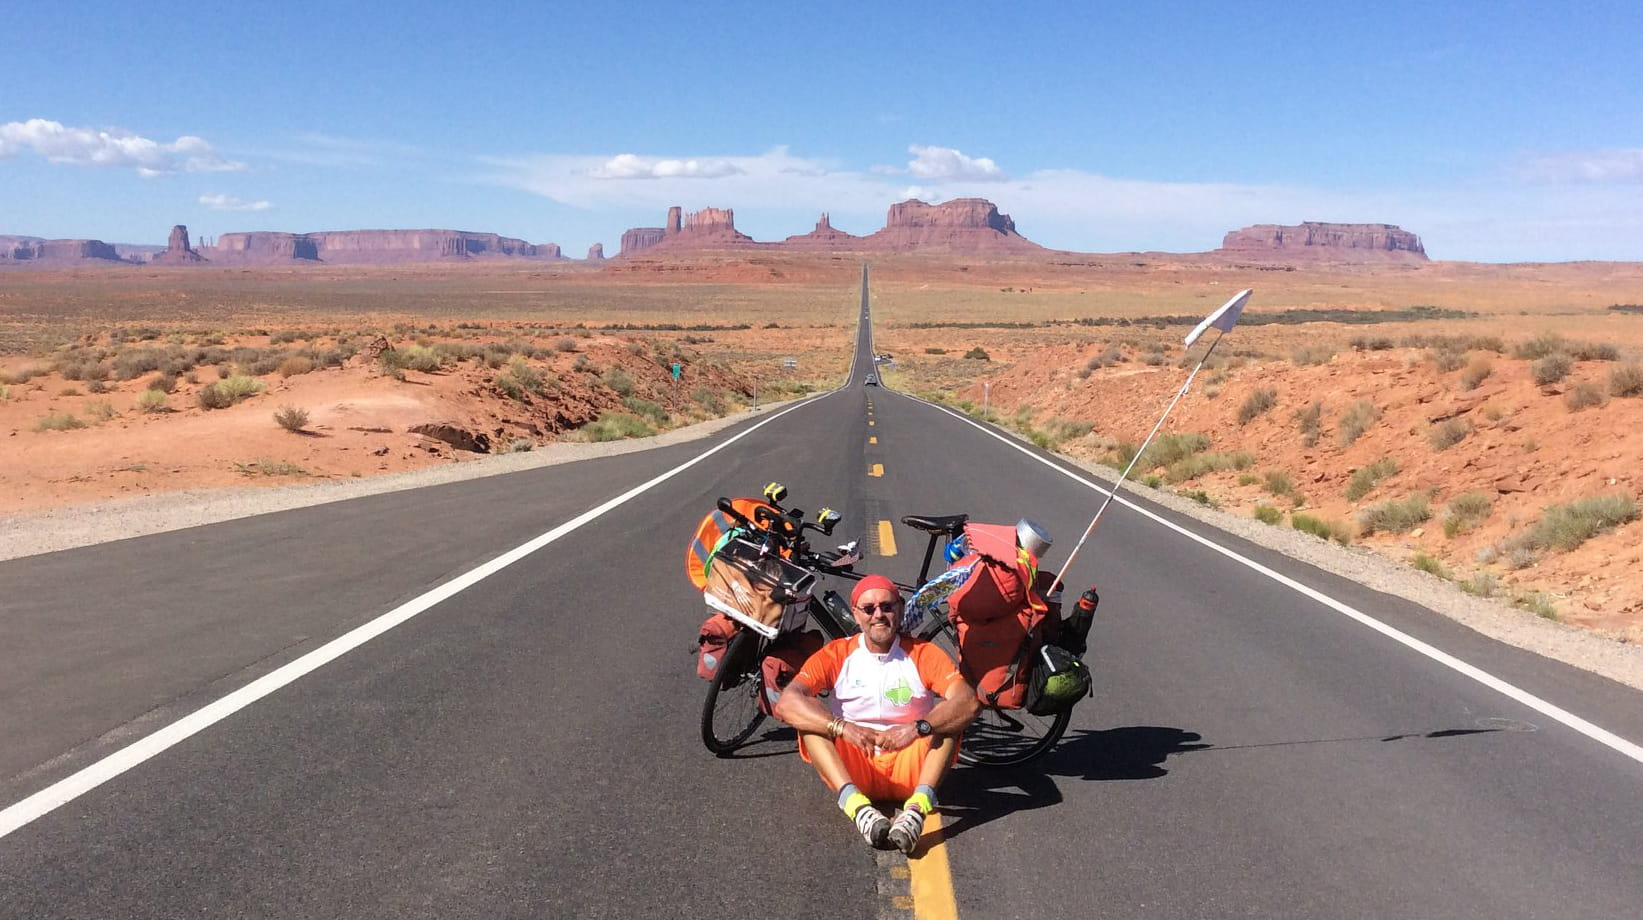 Jorg Richter takes a break from his 8,000 mile journey across the U.S. for a picture on a lonely road leading to Utah's Monument Valley. (Photo courtesy of Jorg Richter)